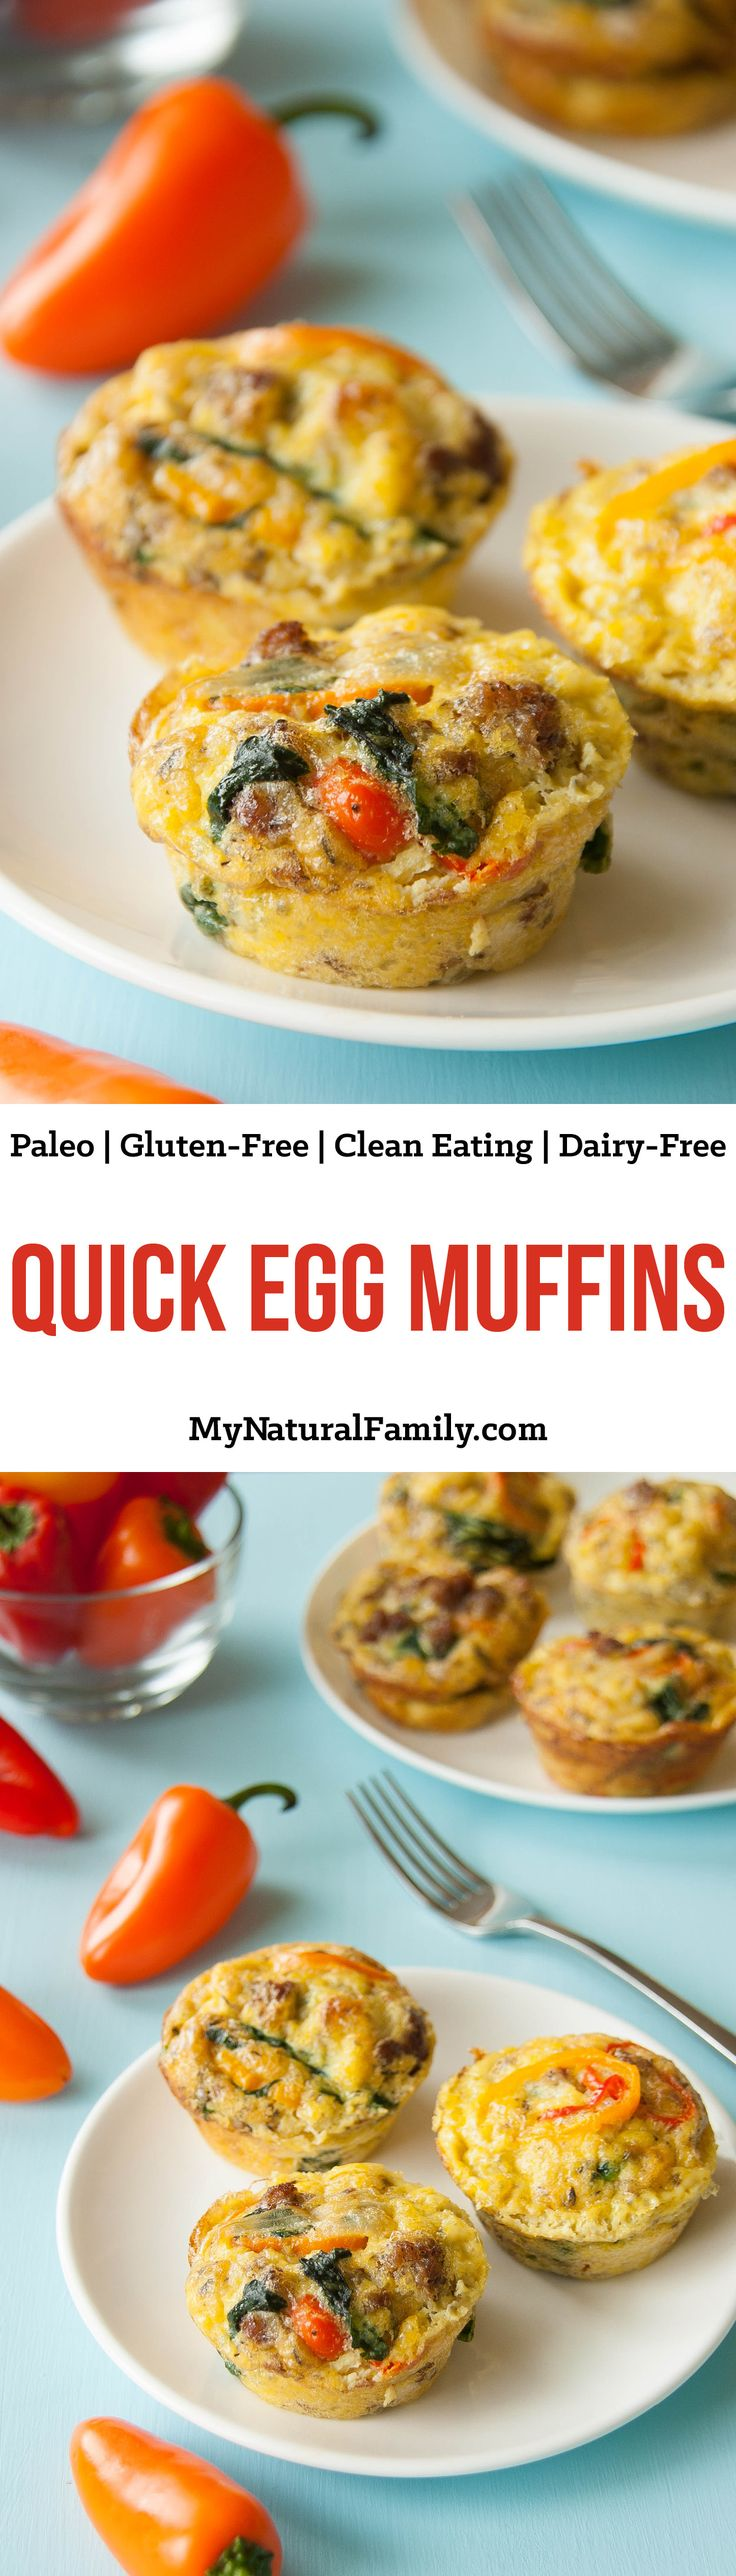 Quick Egg Muffin Recipe {Paleo, Gluten Free, Clean Eating, Dairy Free}. A quick healthy breakfast or mid-morning snack recipe that is full of protein! Pin this clean eating egg recipe to make later this week.